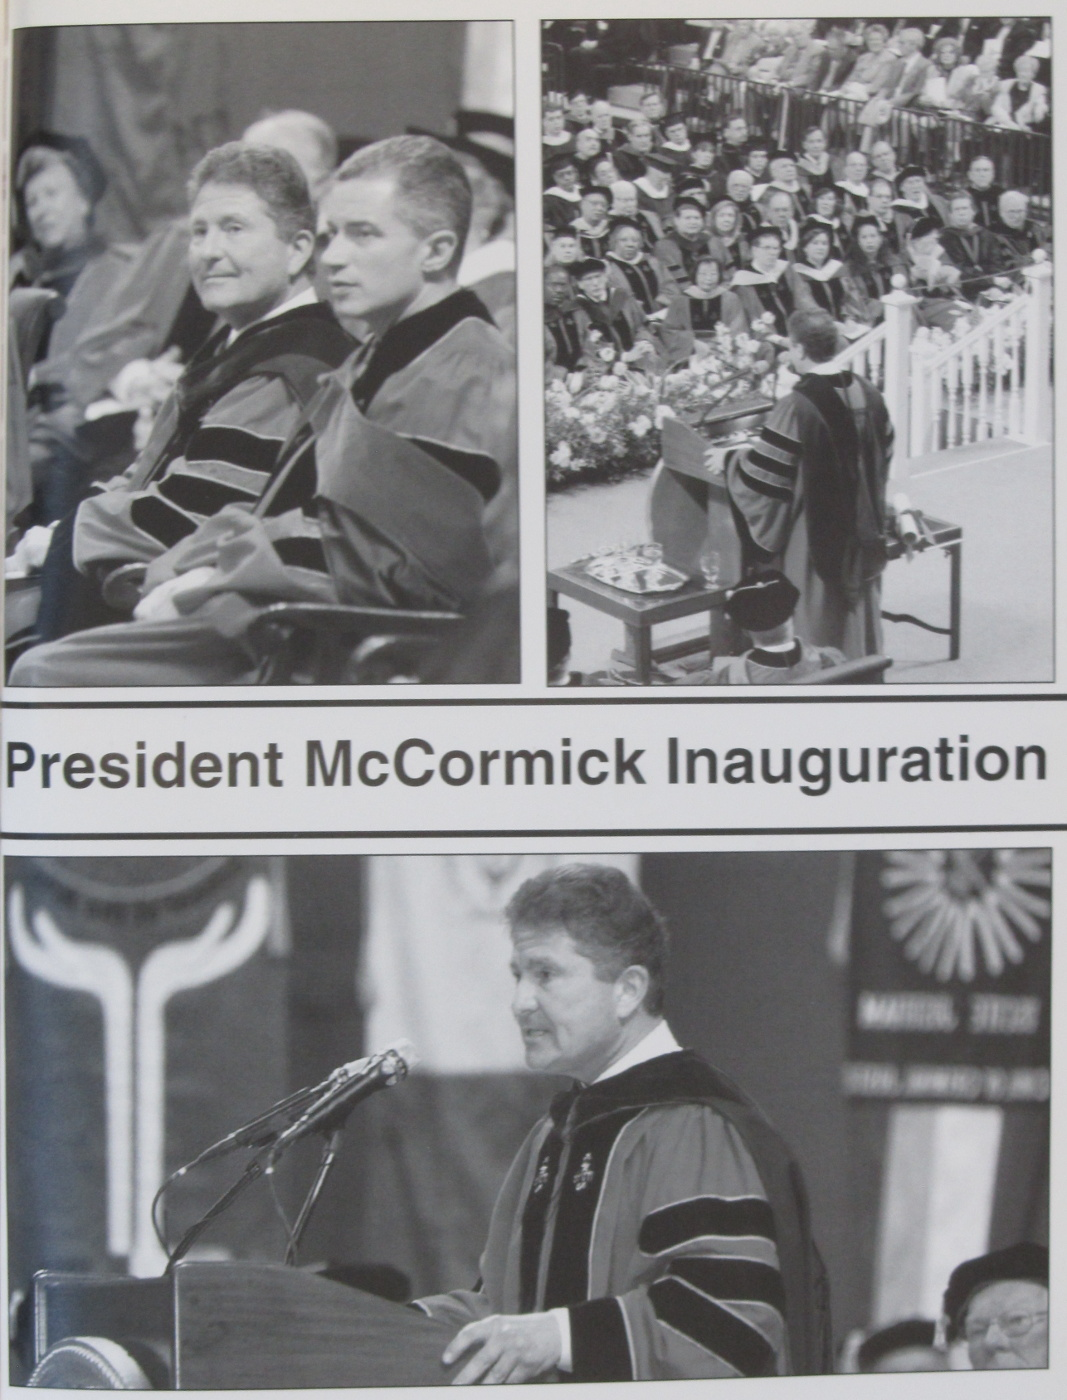 2003 President McCormick Inauguration - WRSU covered the event.